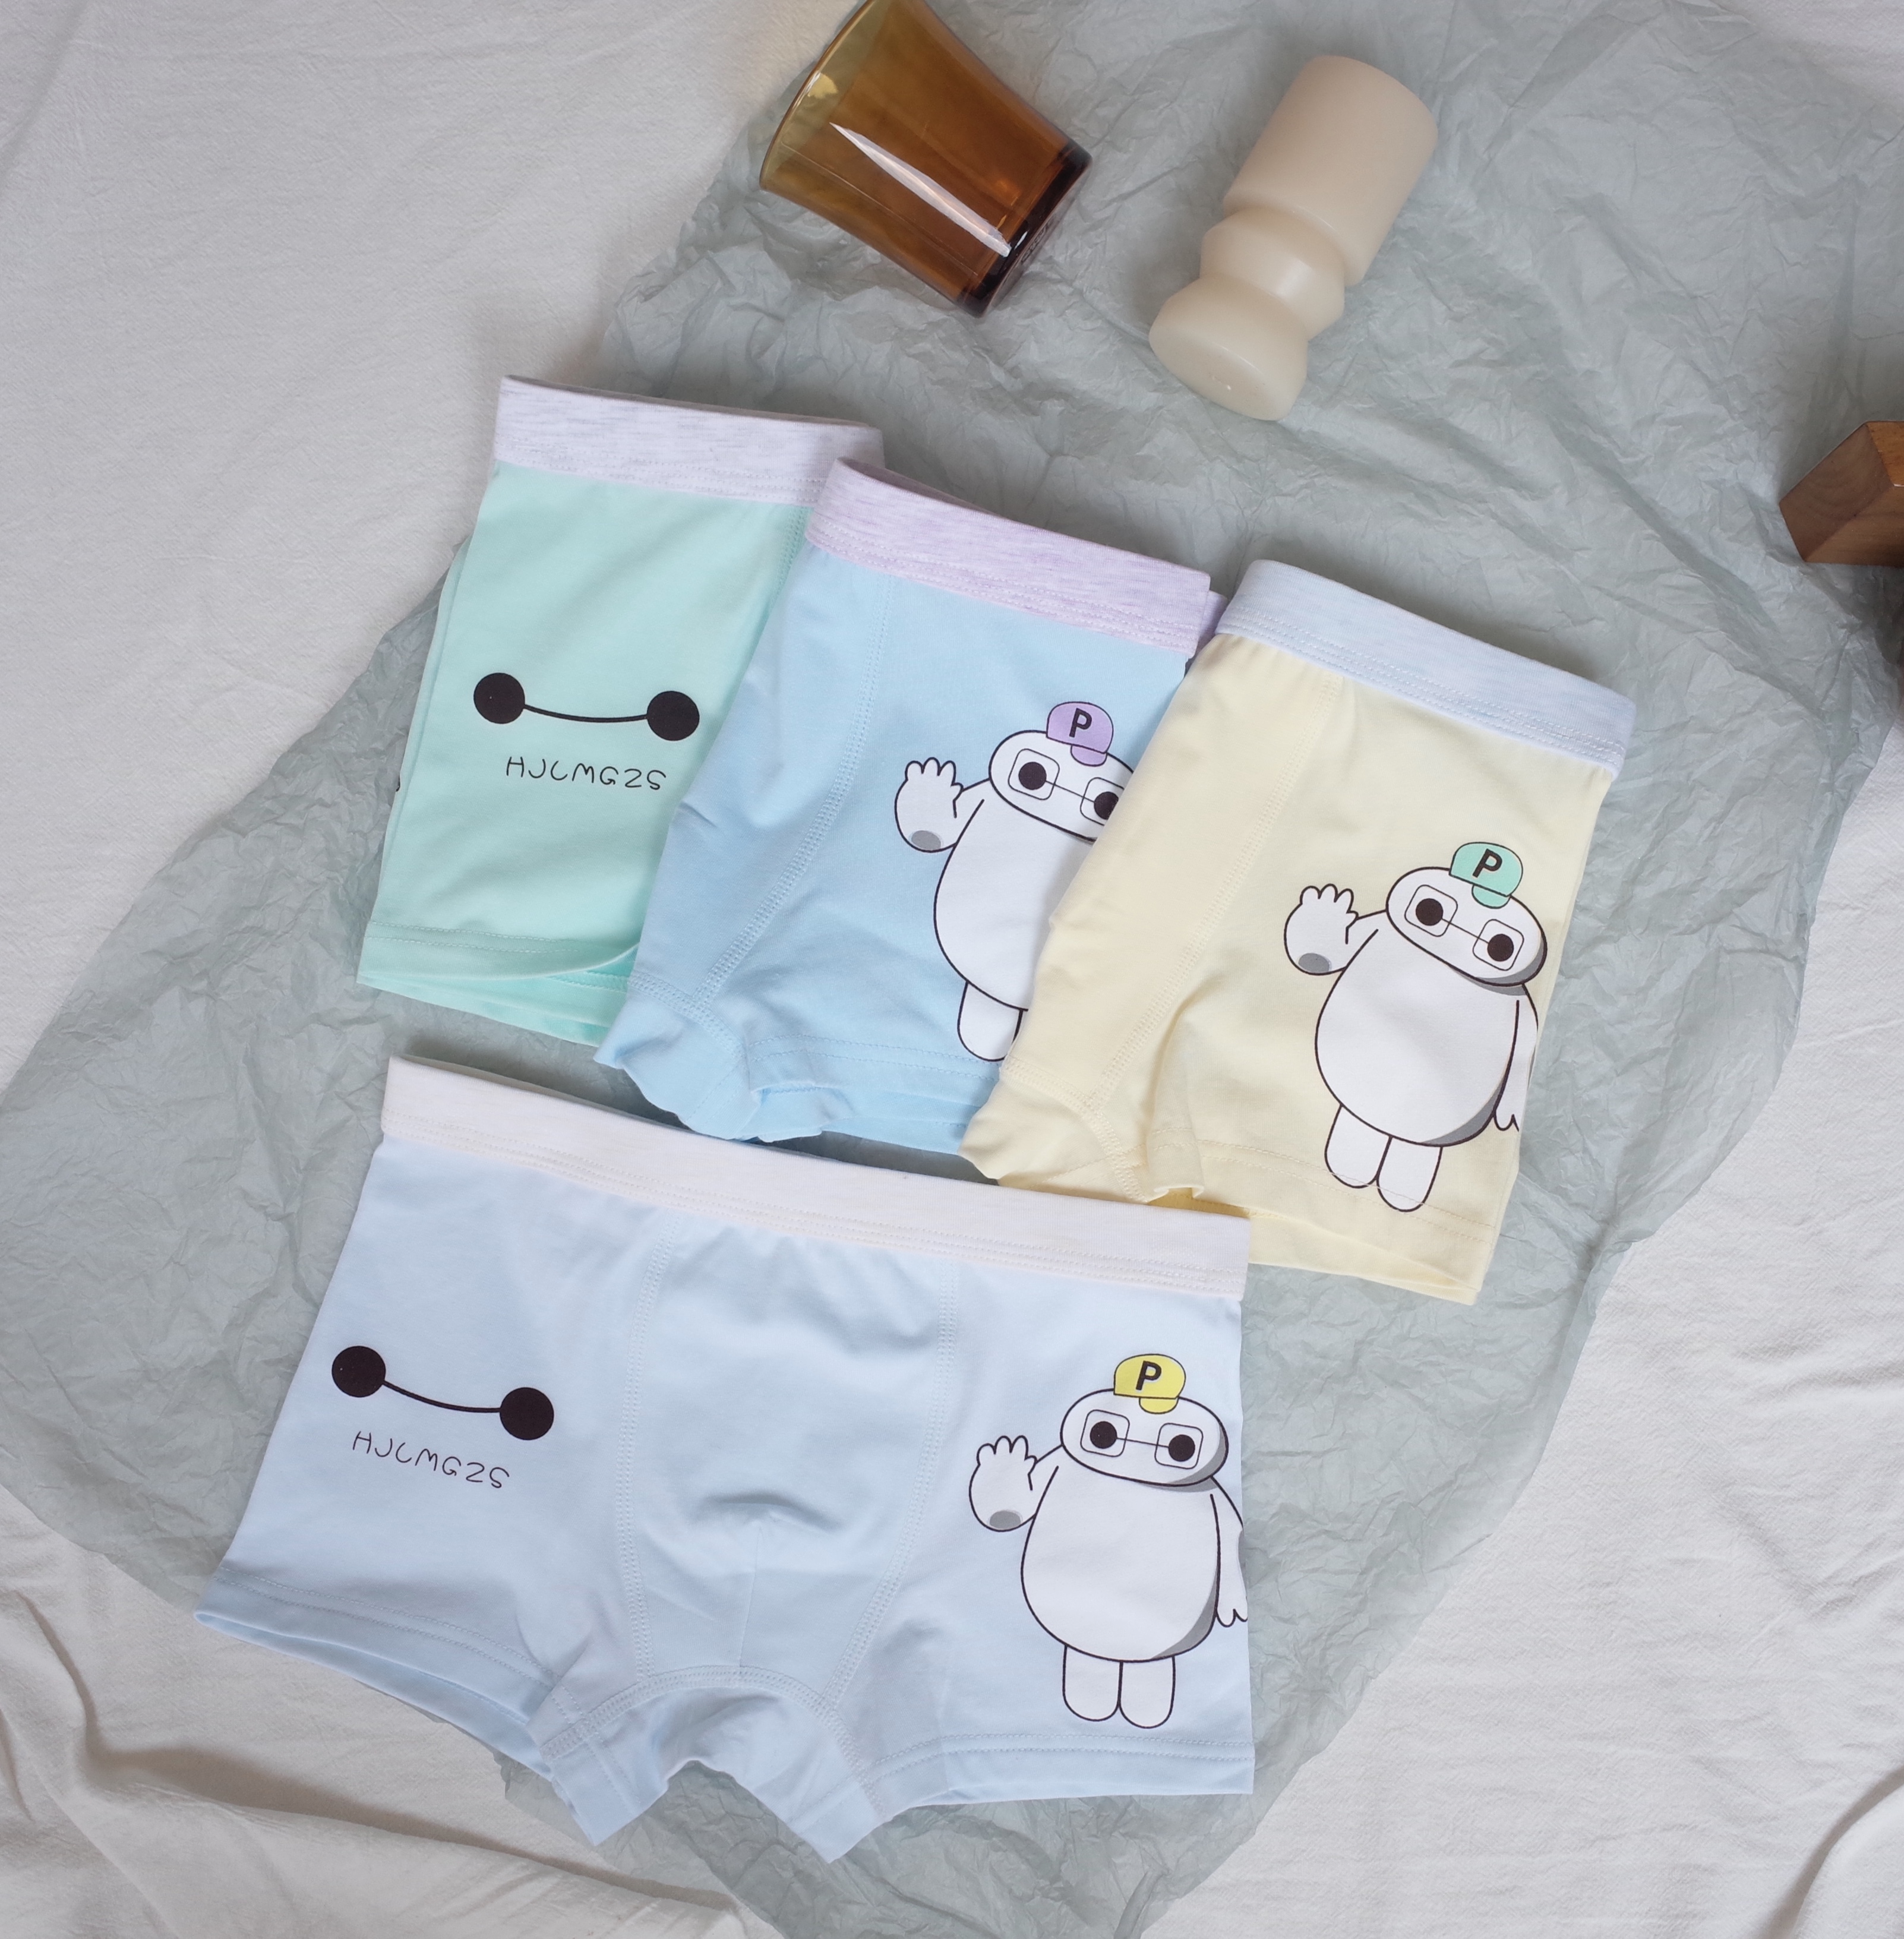 3 pcs lot of fashionable children 39 s underwear robot pattern boy 39 s underwear cotton shorts children 39 s pants ladle boy 39 s shorts